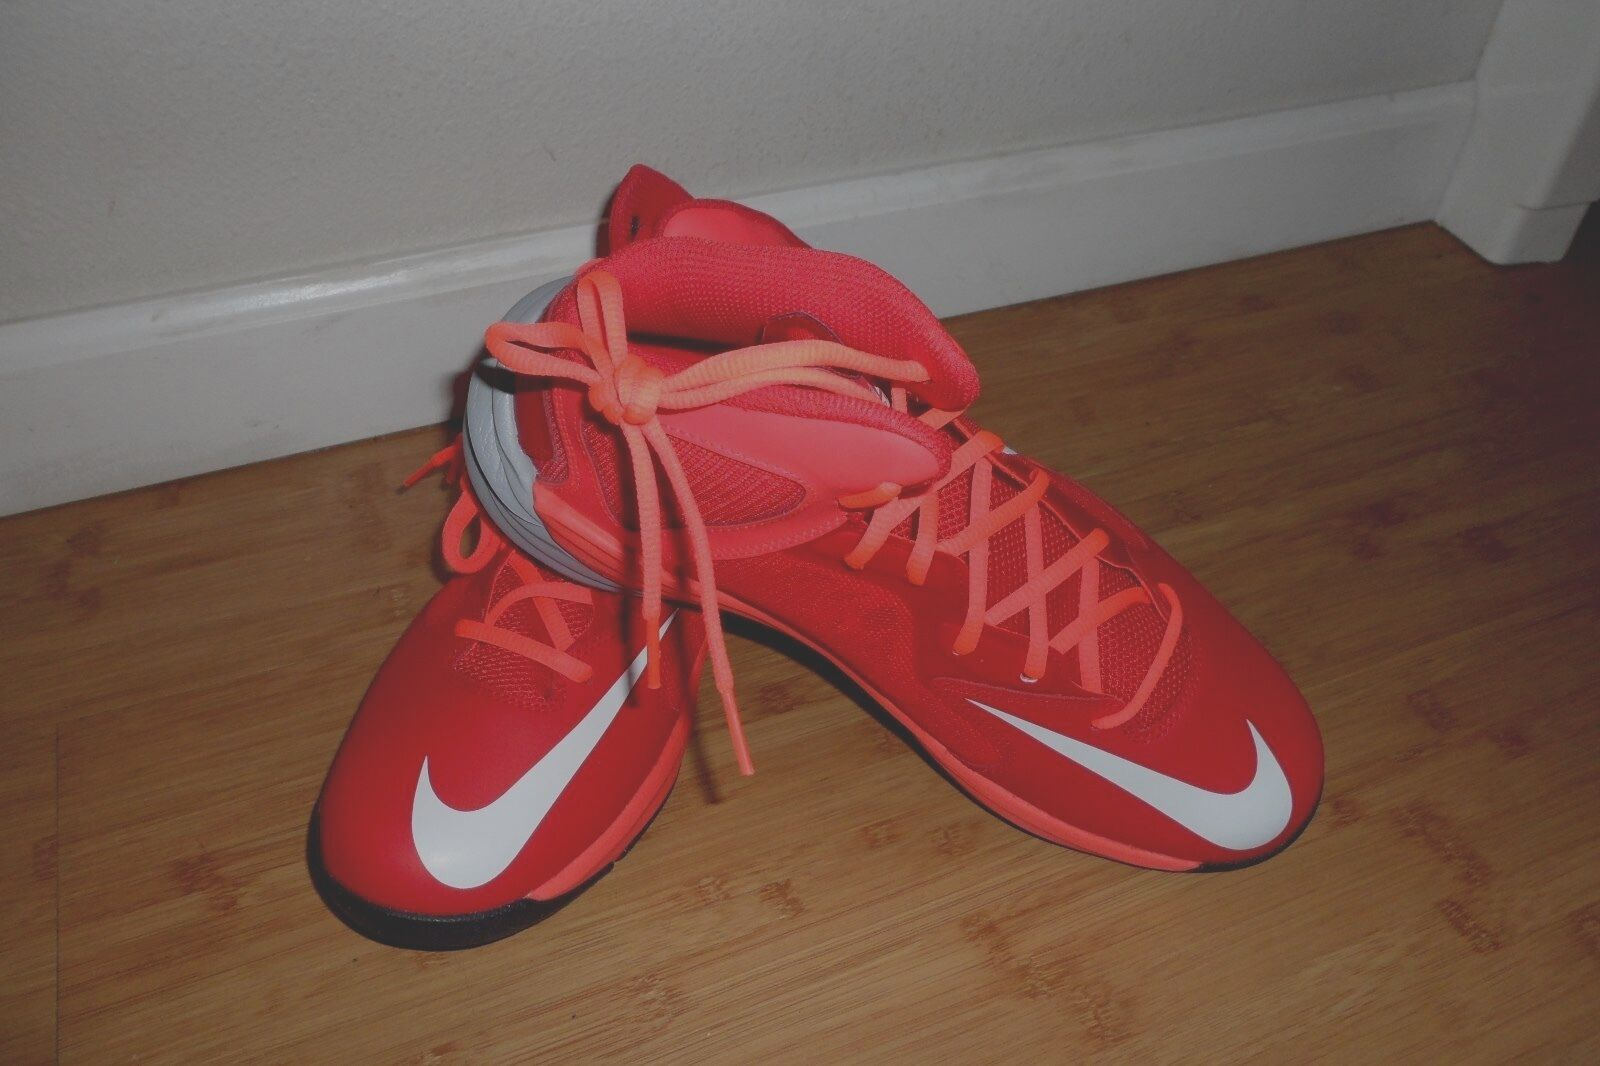 NWOB Men's Nike shoes size 10